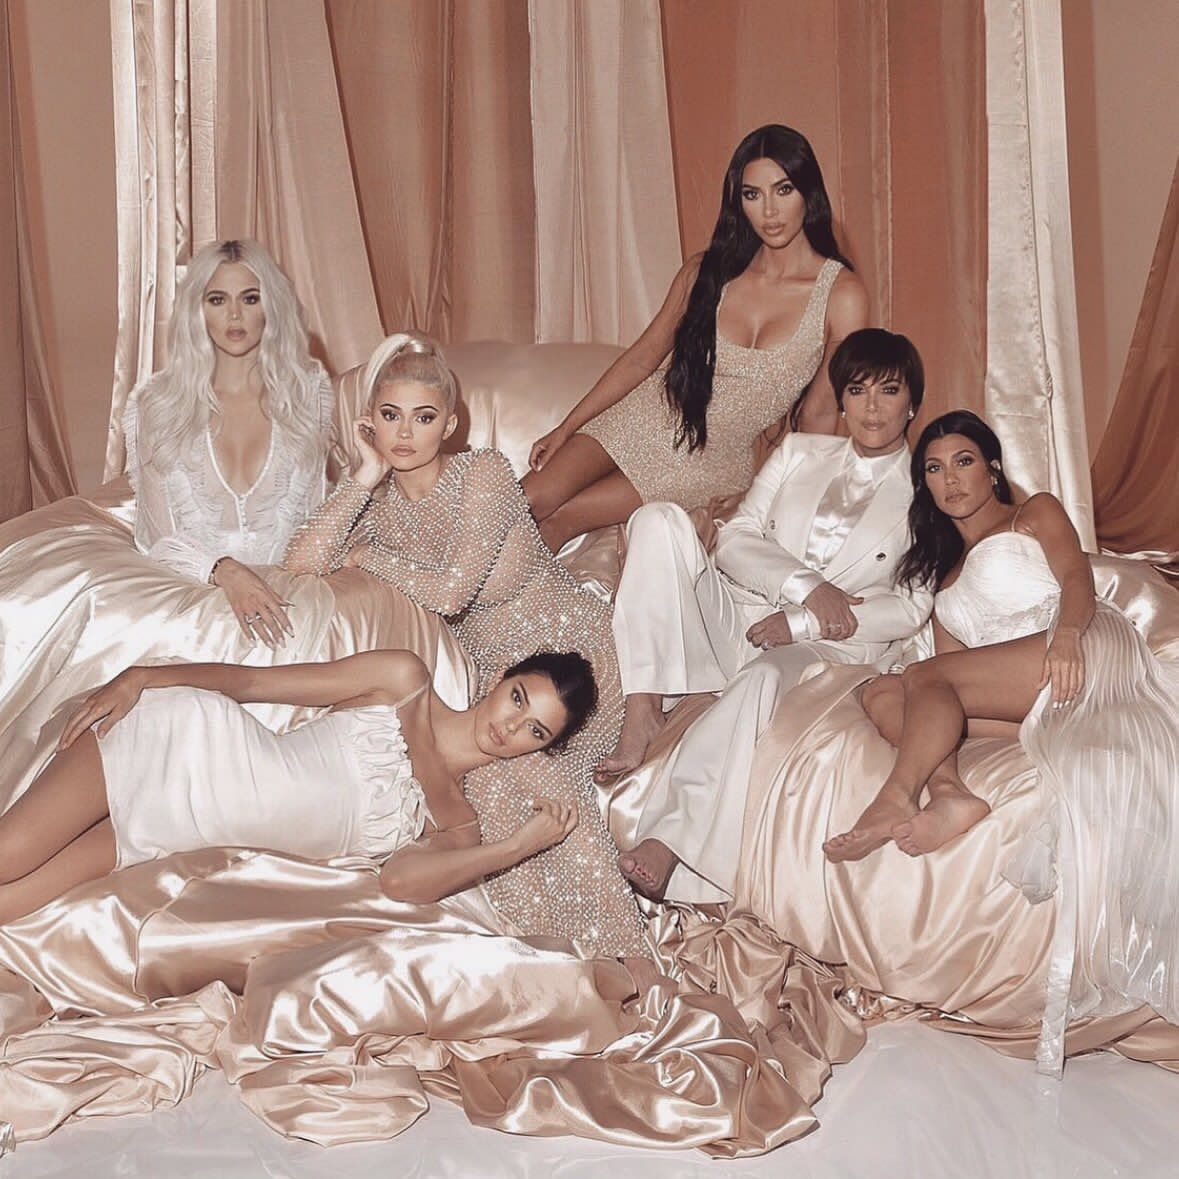 KUWTK Season 16 | Kardashian family photo, Kardashian family, Kardashian